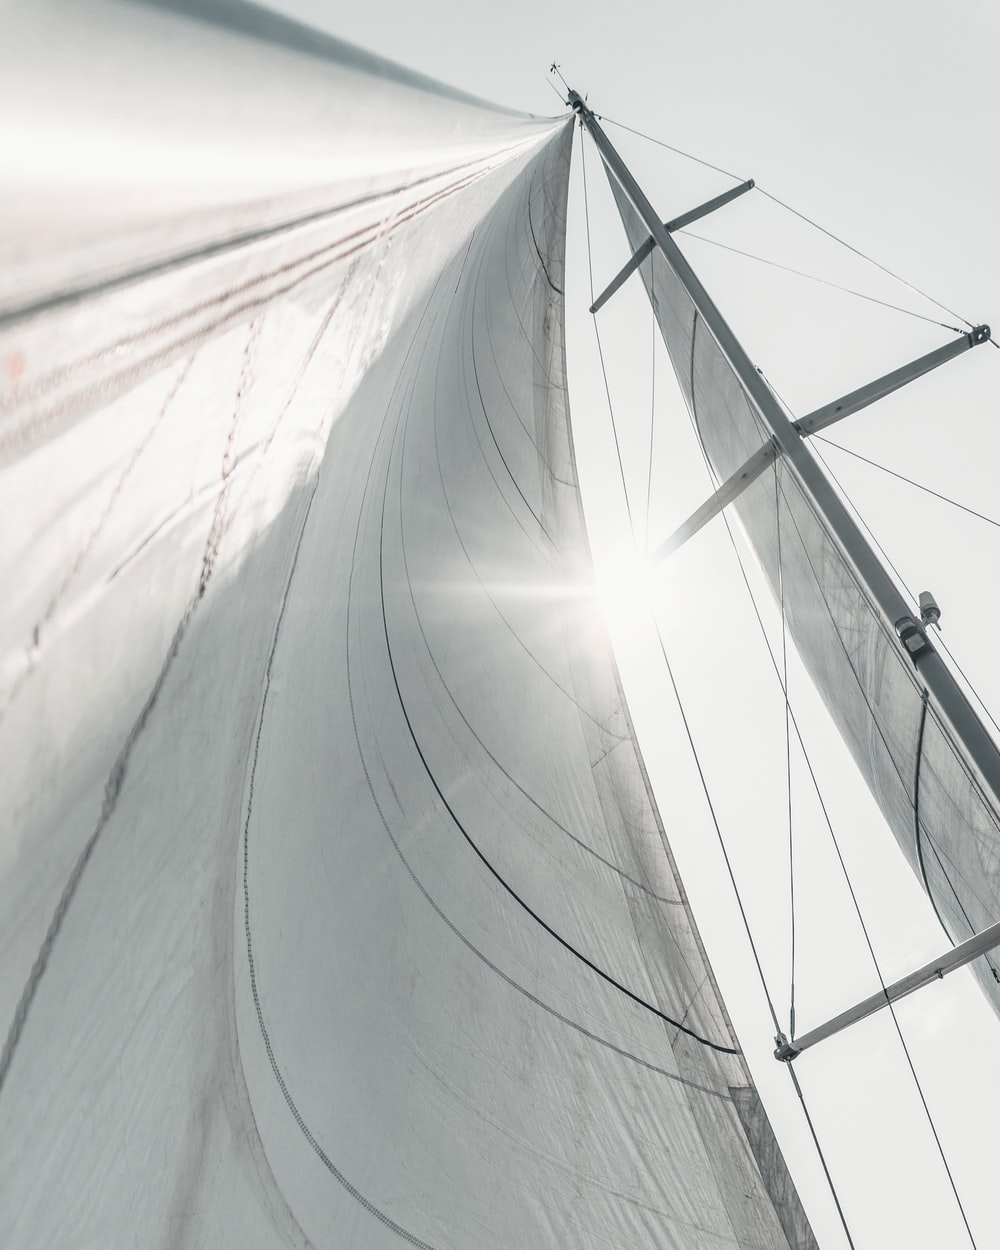 low-angle photograph of white sail